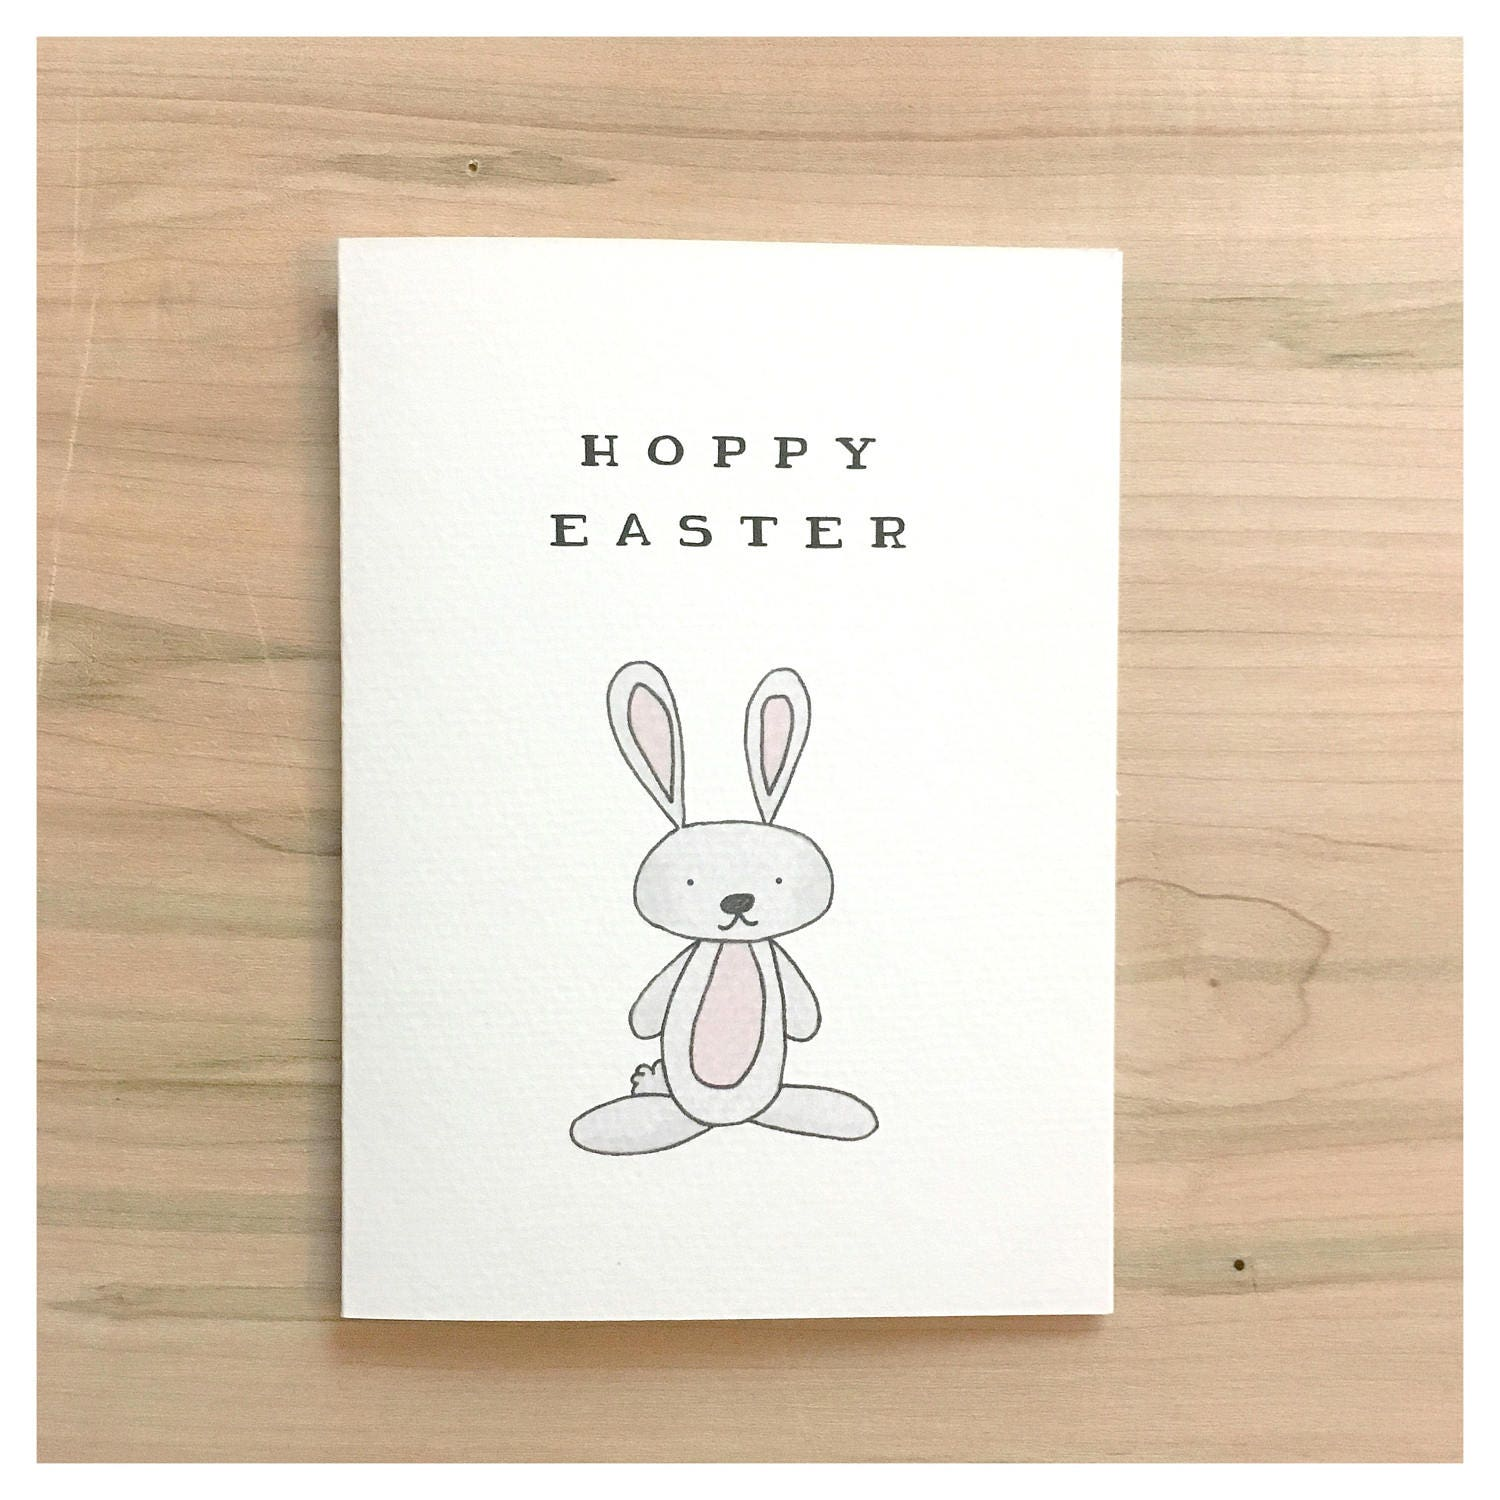 Hoppy easter easter card funny easter card cute card funny gallery photo gallery photo gallery photo kristyandbryce Choice Image